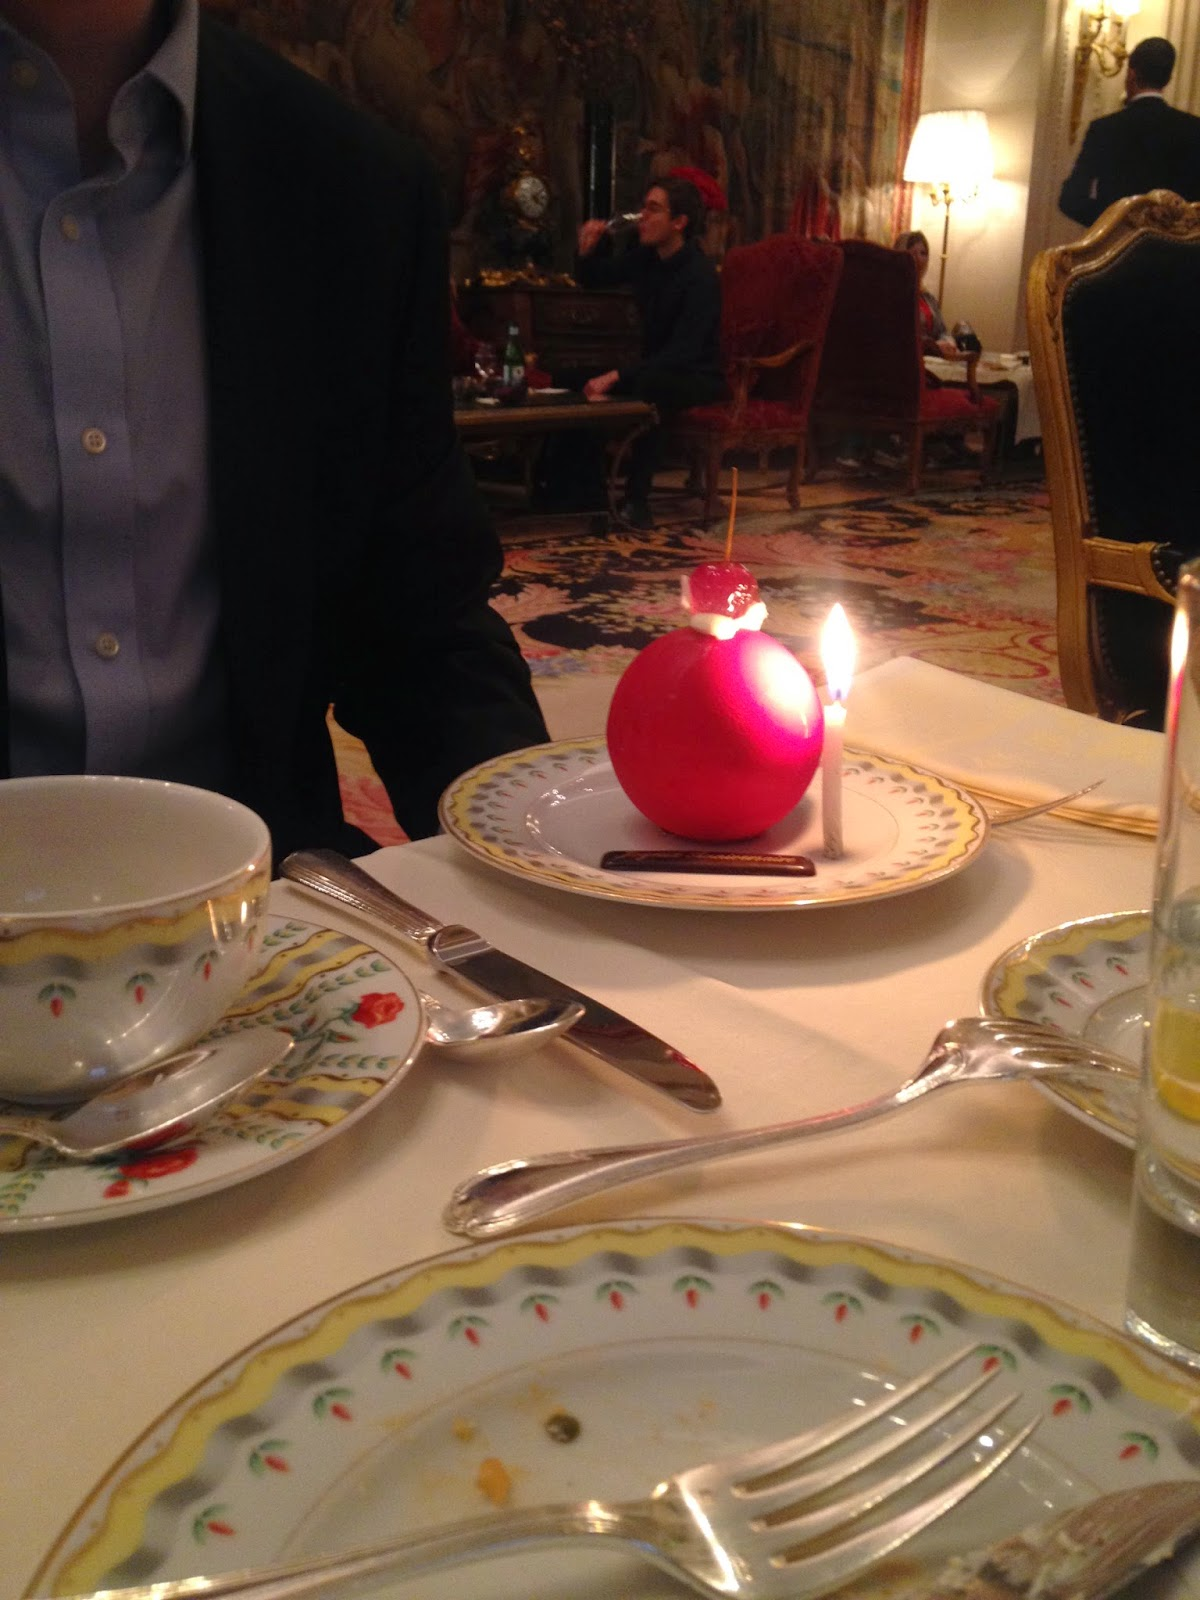 Birthday surprise at La Galerie, Four Seasons Hotel George V, Paris